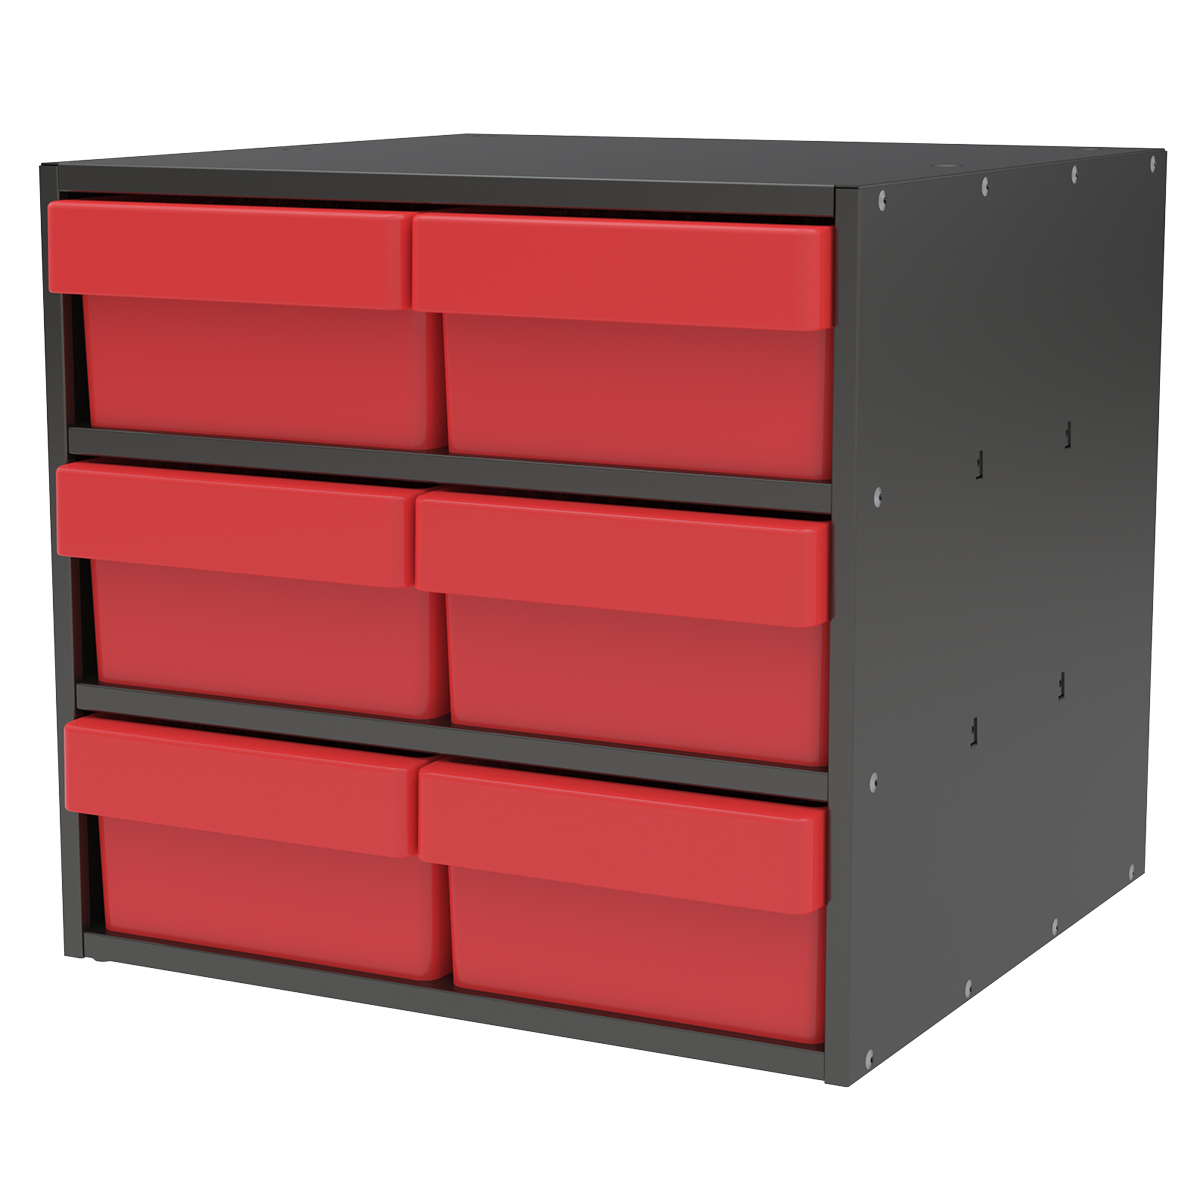 Item DISCONTINUED by Manufacturer.  Modular Cabinet, 18x17x16, 6 Drawers, Gray/Red (AD1817C88RED).  This item sold in carton quantities of 1.